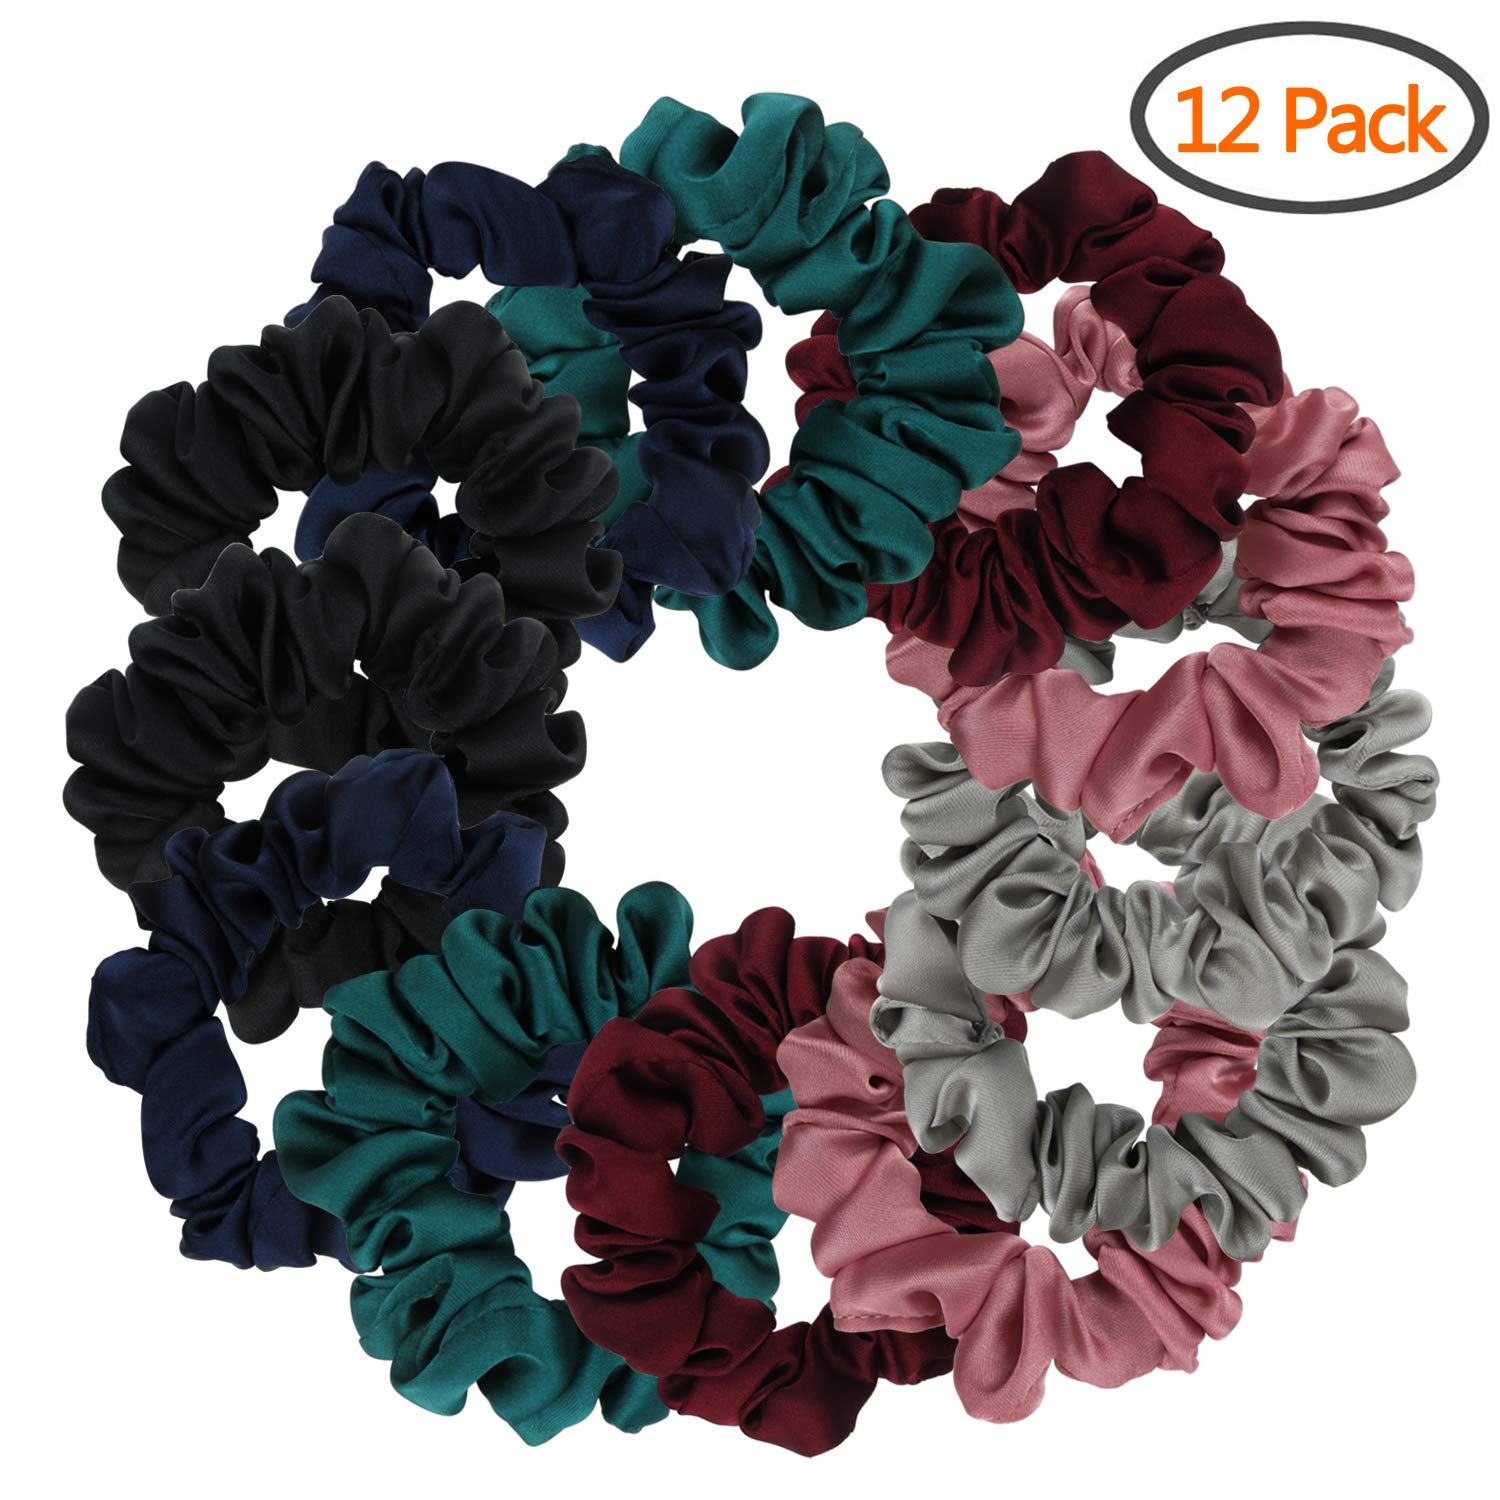 BETITETO Set of 12 Satin Ponytail Holders Soft Hair Elastics Vintage Hair Scrunchies Ties for Women Girls (Multicolored)